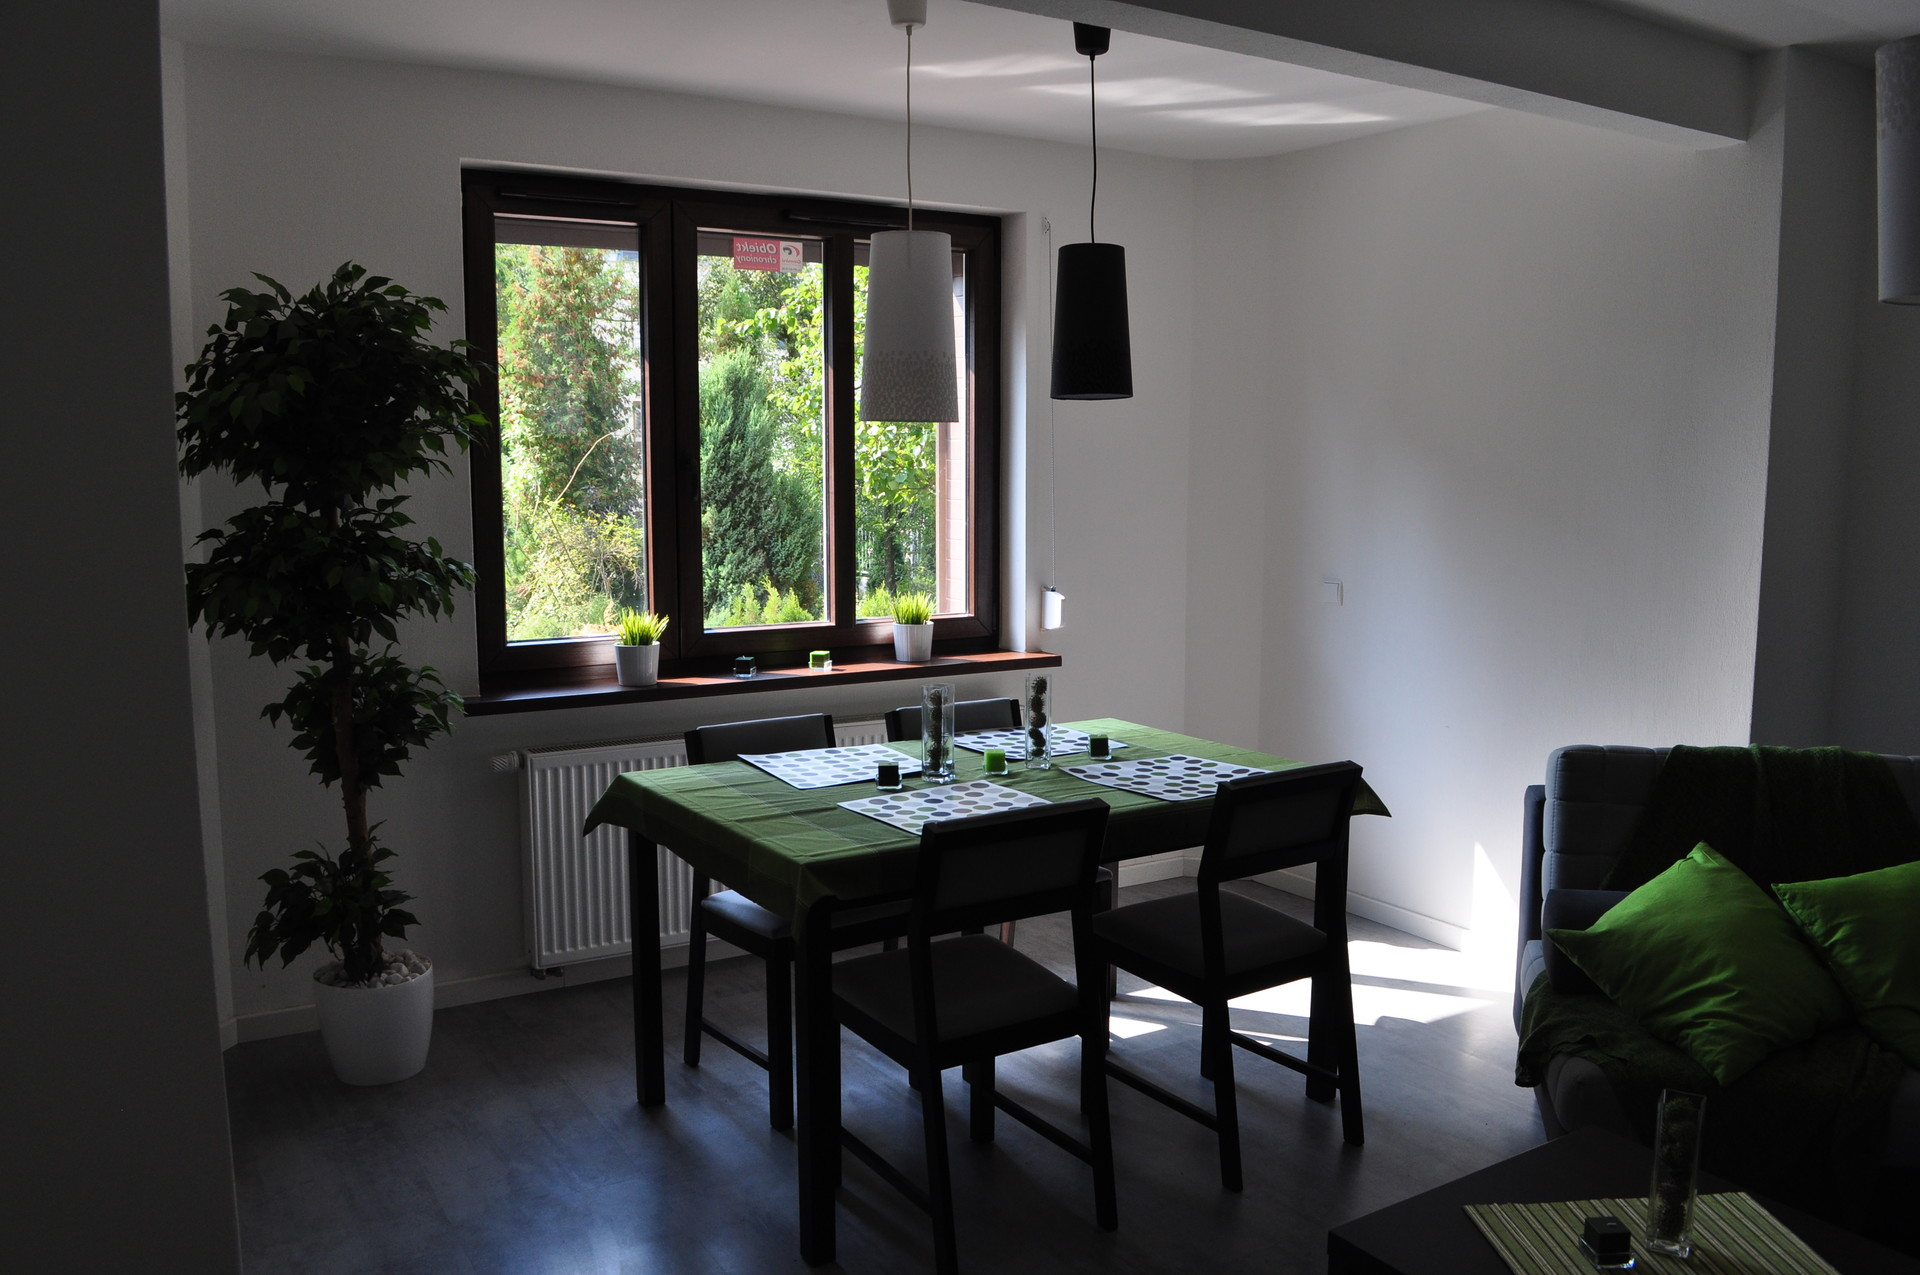 ... Parkin Large And Sunny Apartment In Szczecin With Small Terrace, ...